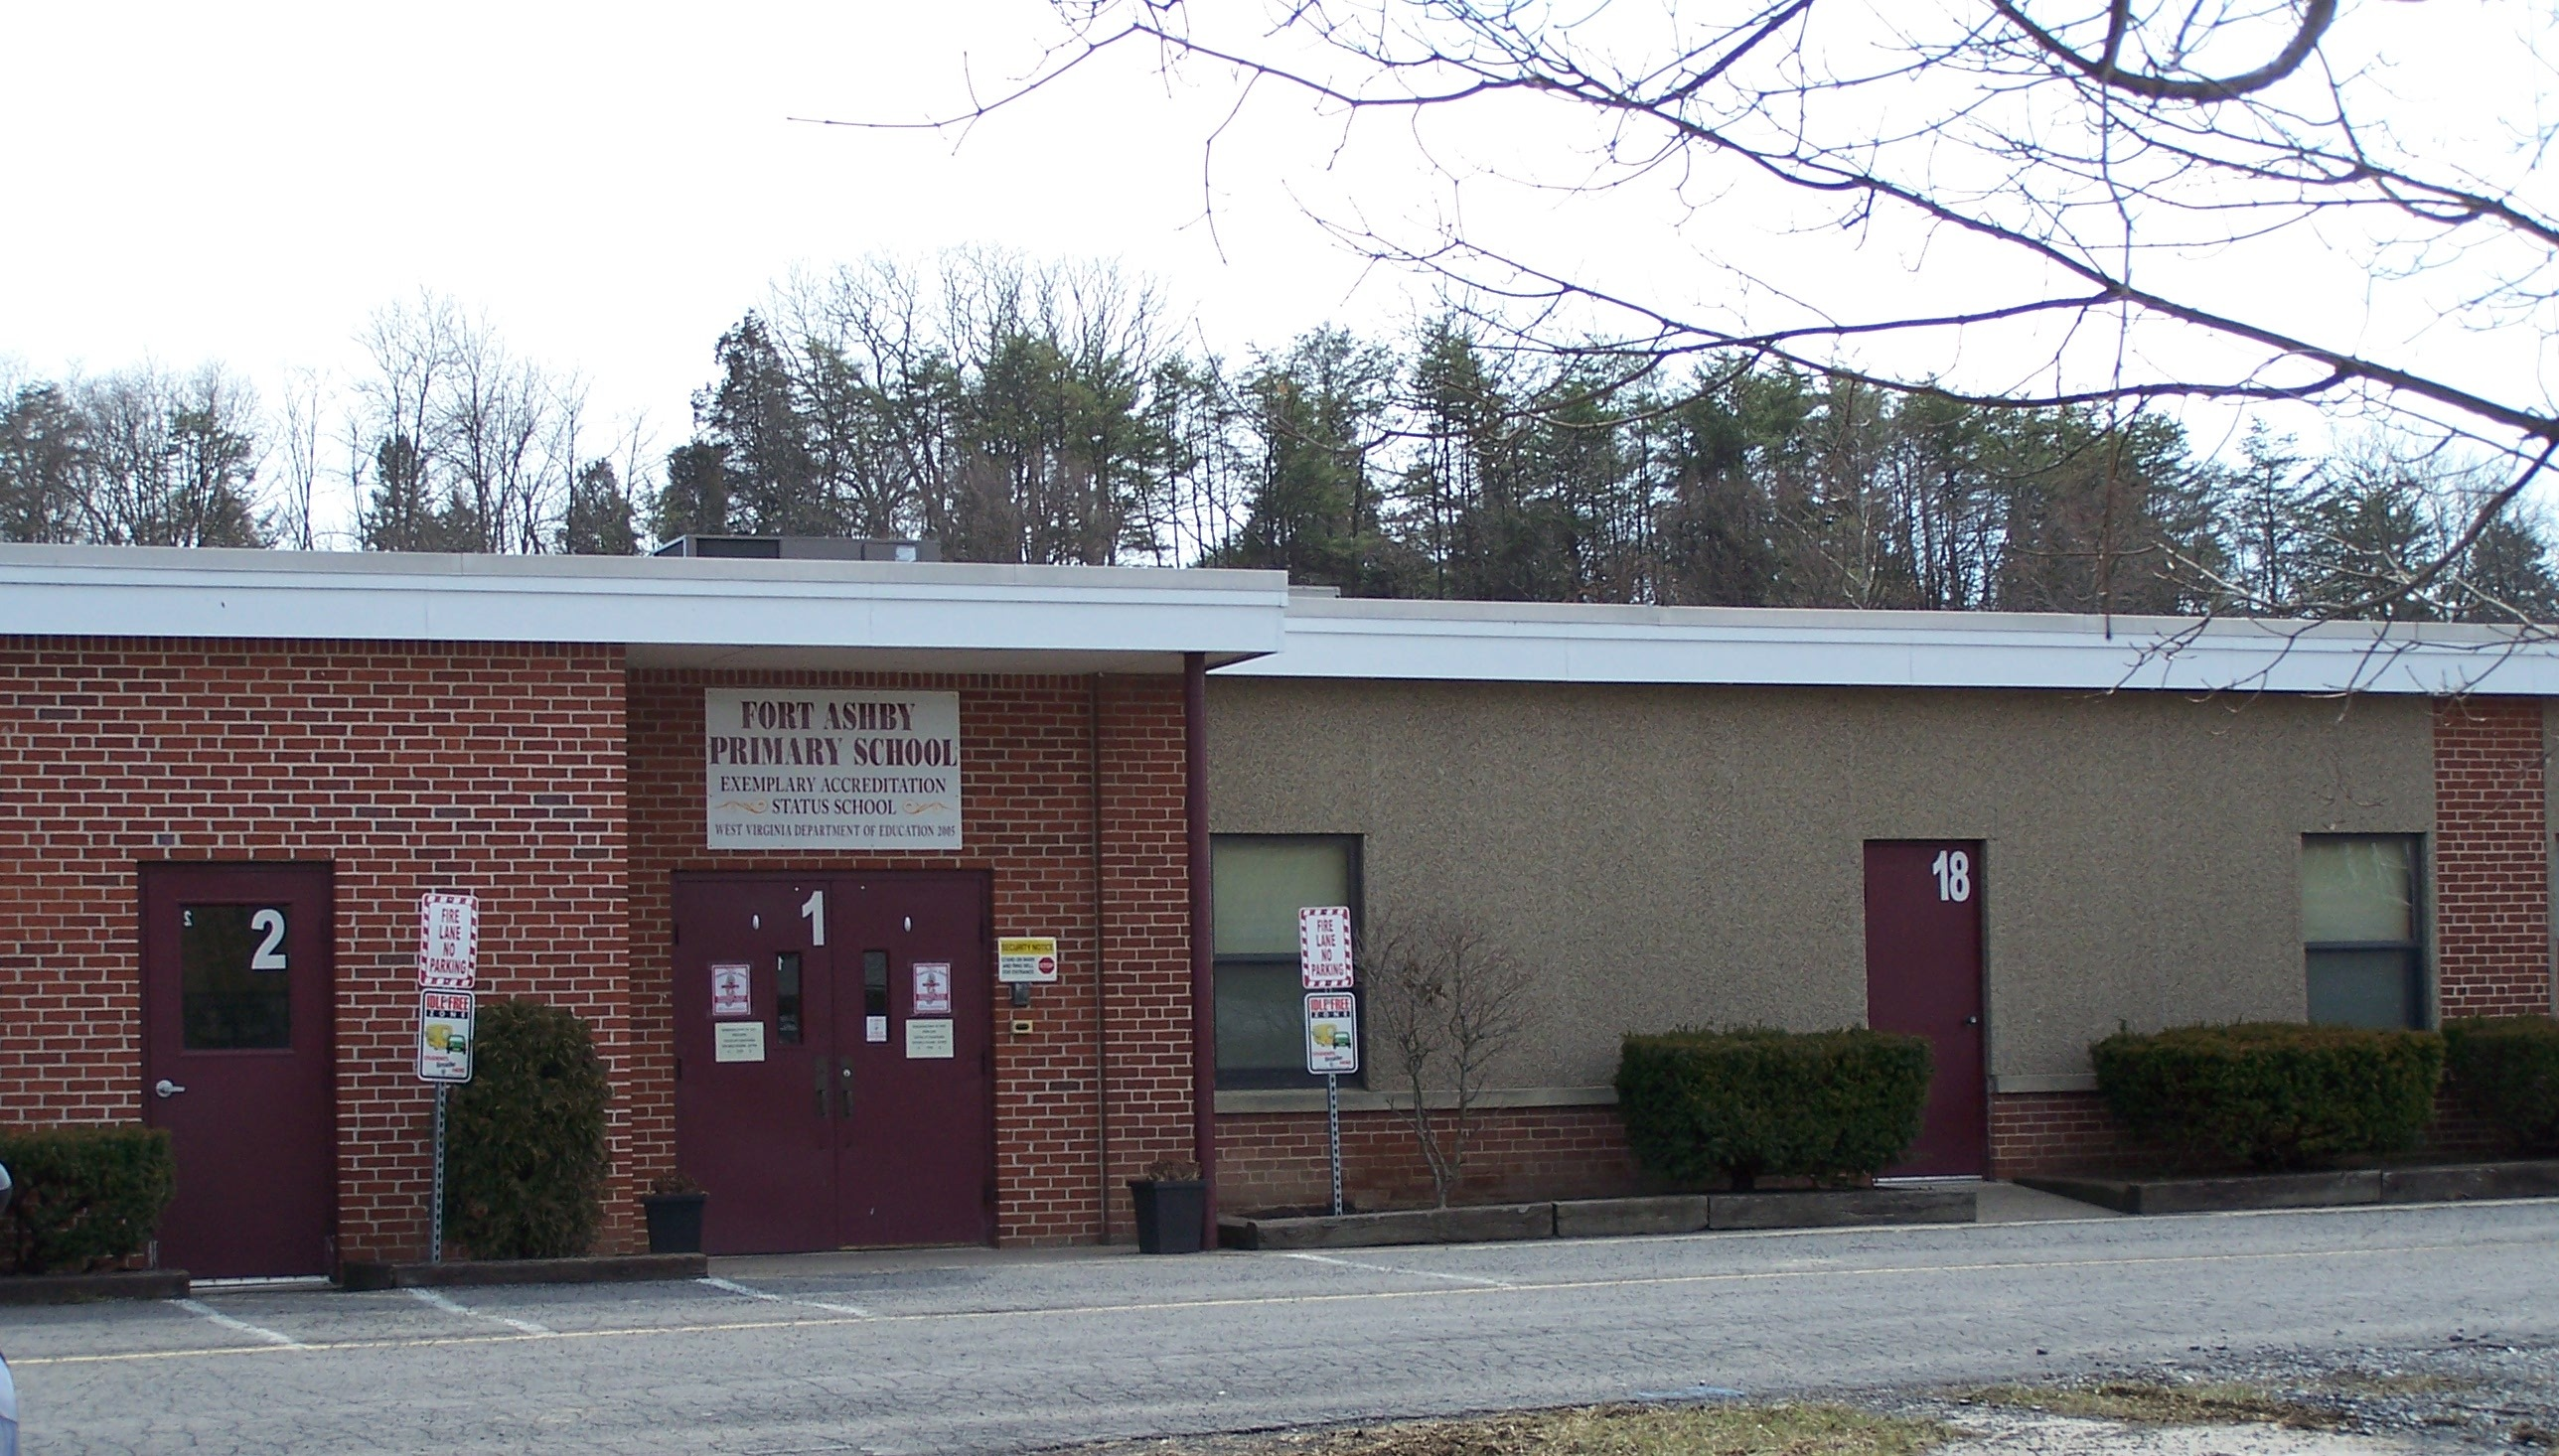 Fort Ashby Primary School